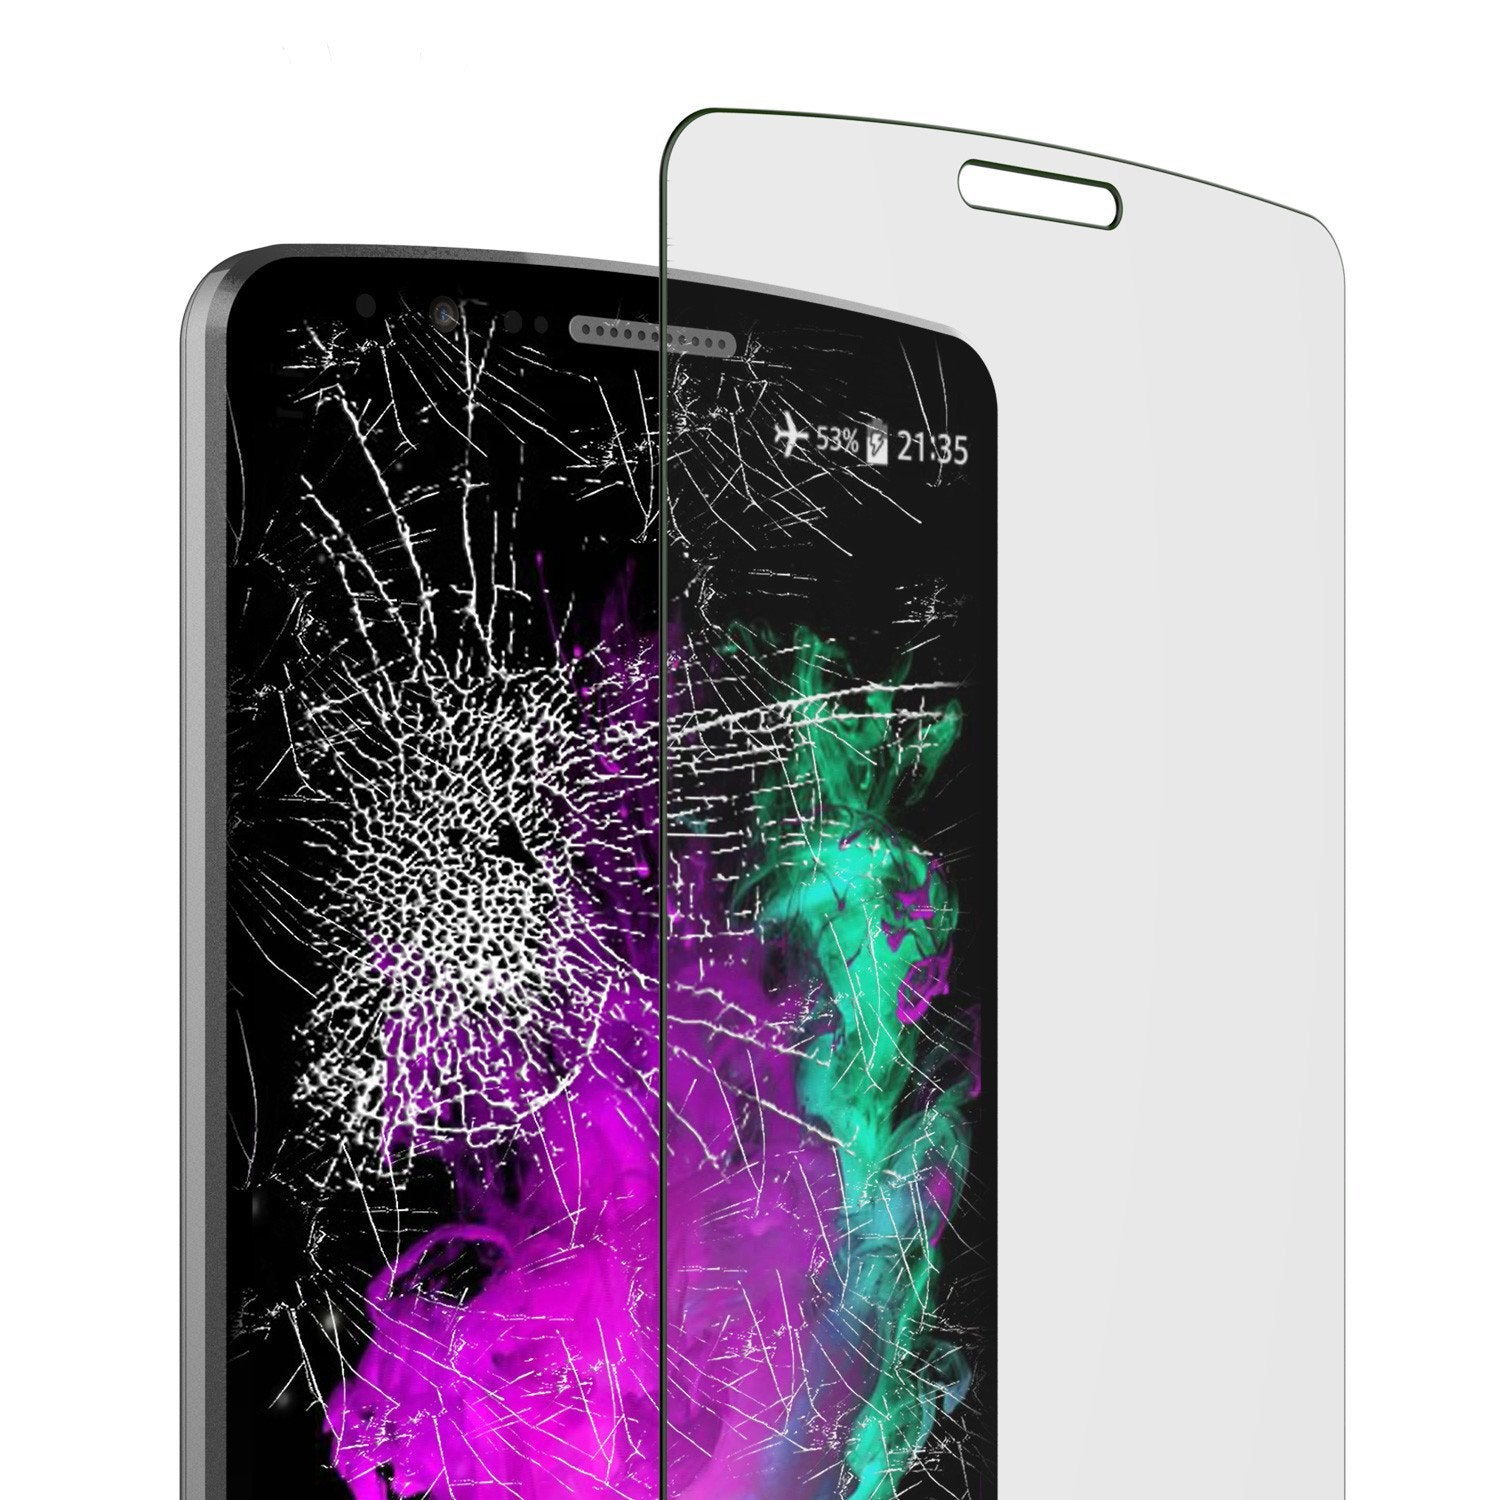 LG G3 Punkcase Glass SHIELD Tempered Glass Screen Protector 0.33mm Thick 9H Glass - PunkCase NZ